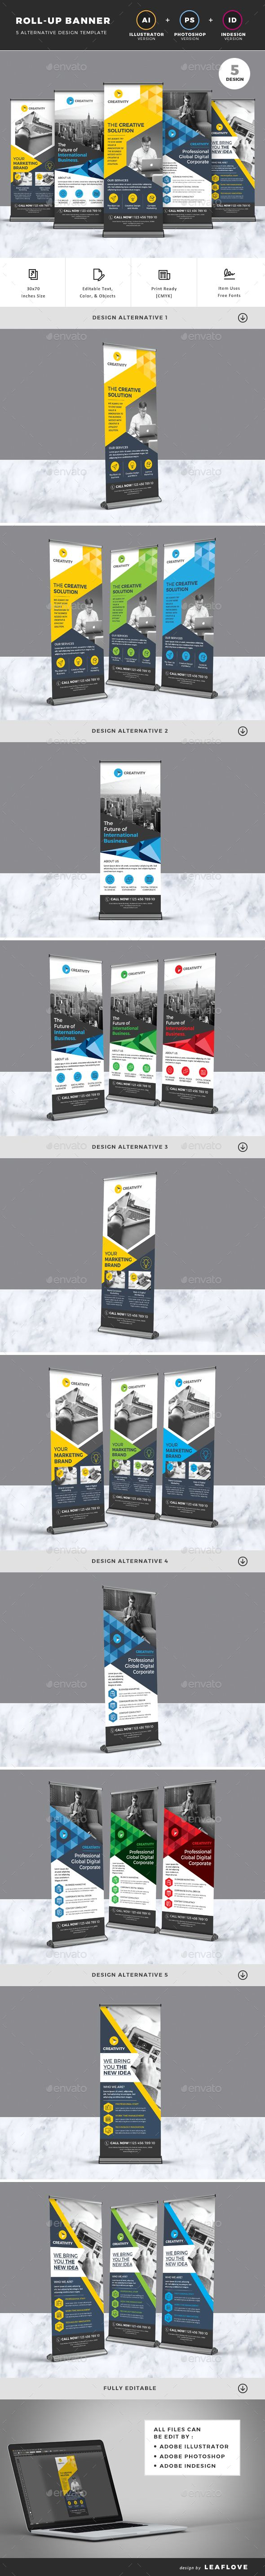 Corporate roll up banner standee template design images ai. Roll Up Banners Banner Template Design Retractable Banner Design Banner Design